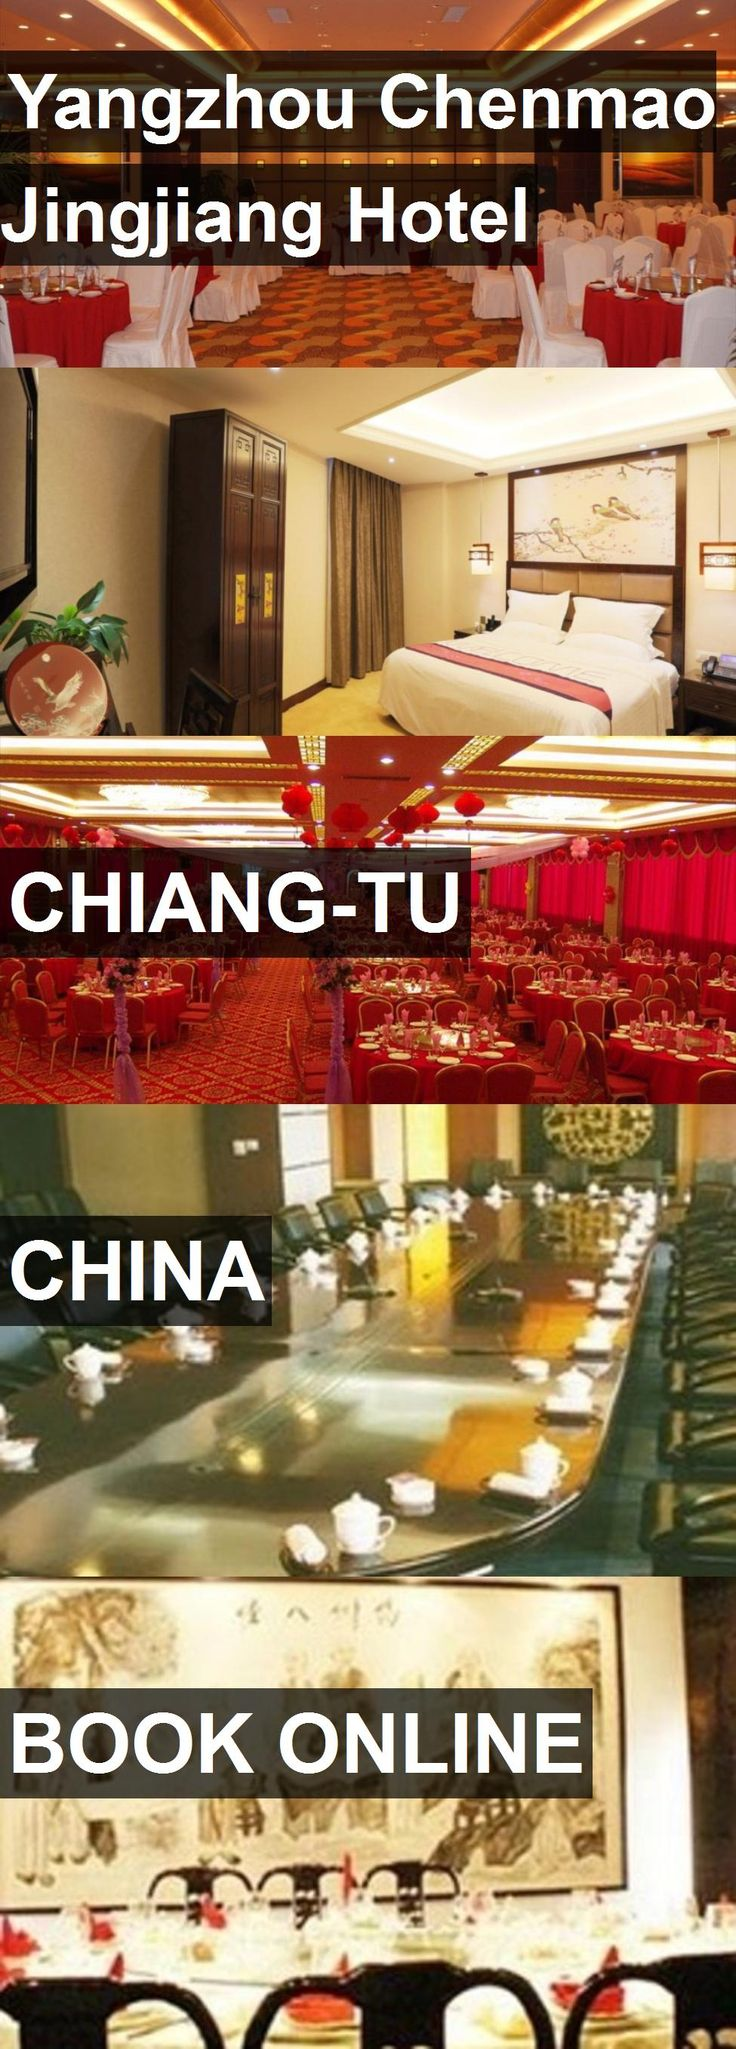 Yangzhou Chenmao Jingjiang Hotel in Chiang-tu, China. For more information, photos, reviews and best prices please follow the link. #China #Chiang-tu #travel #vacation #hotel